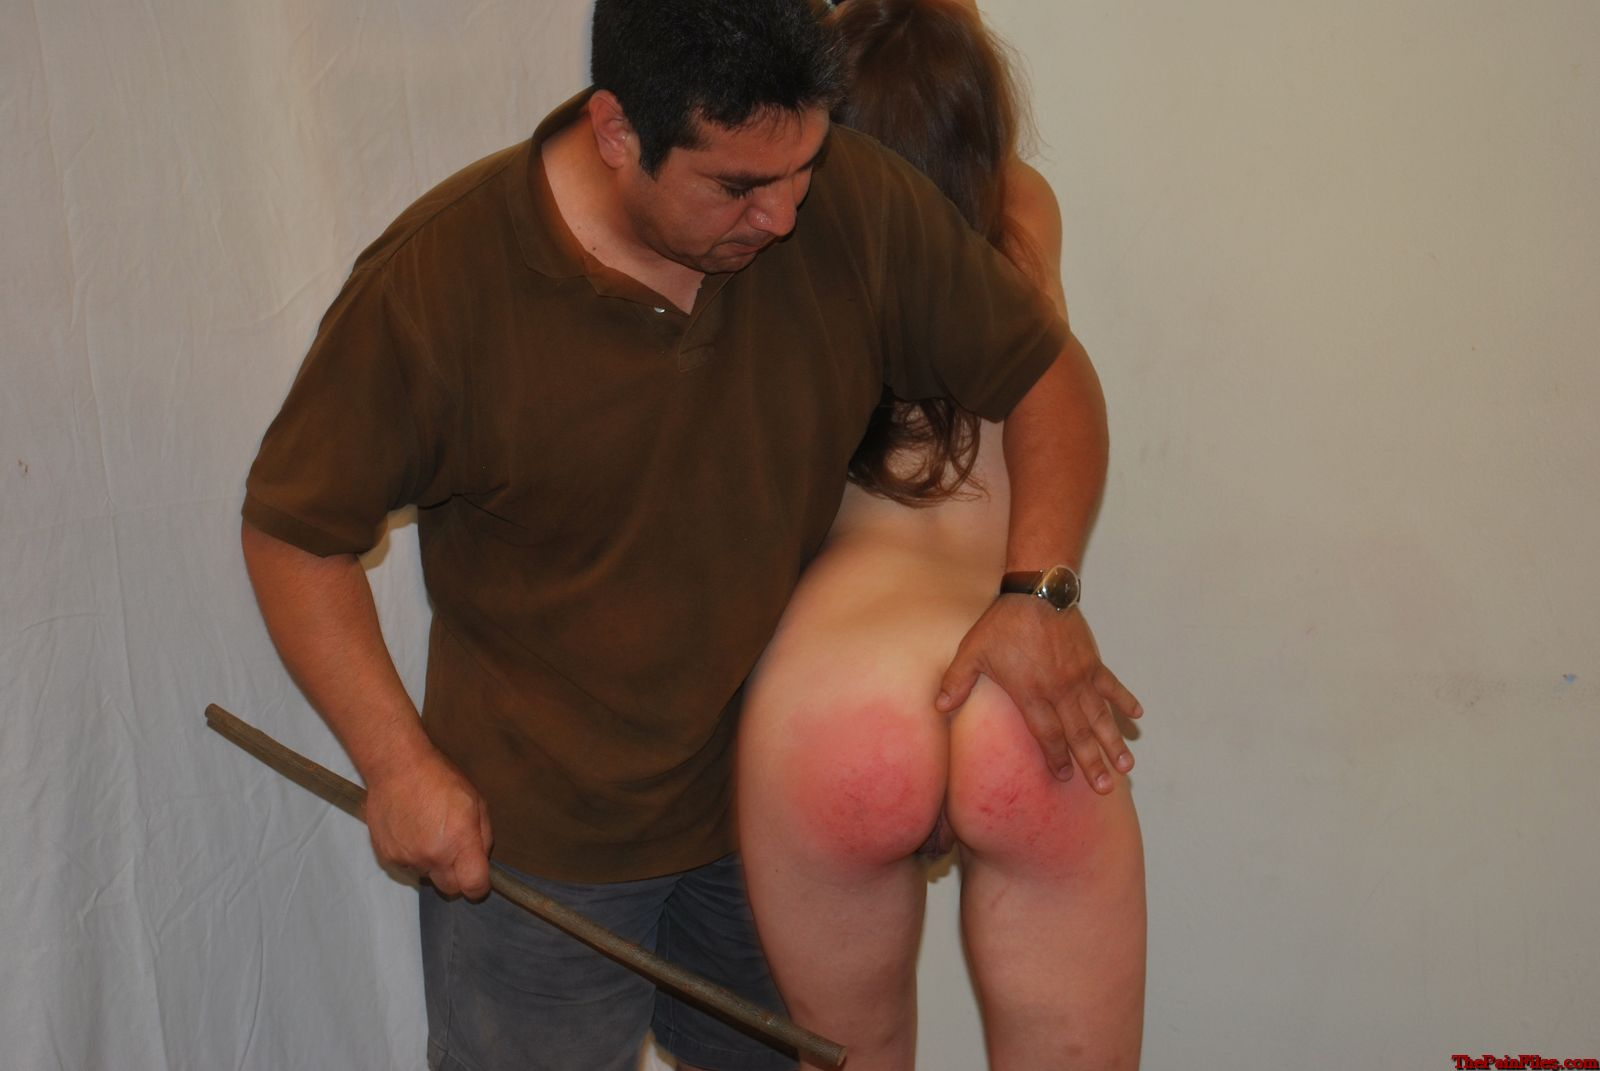 Curious bare bottom spanking corporal punishment accept. opinion